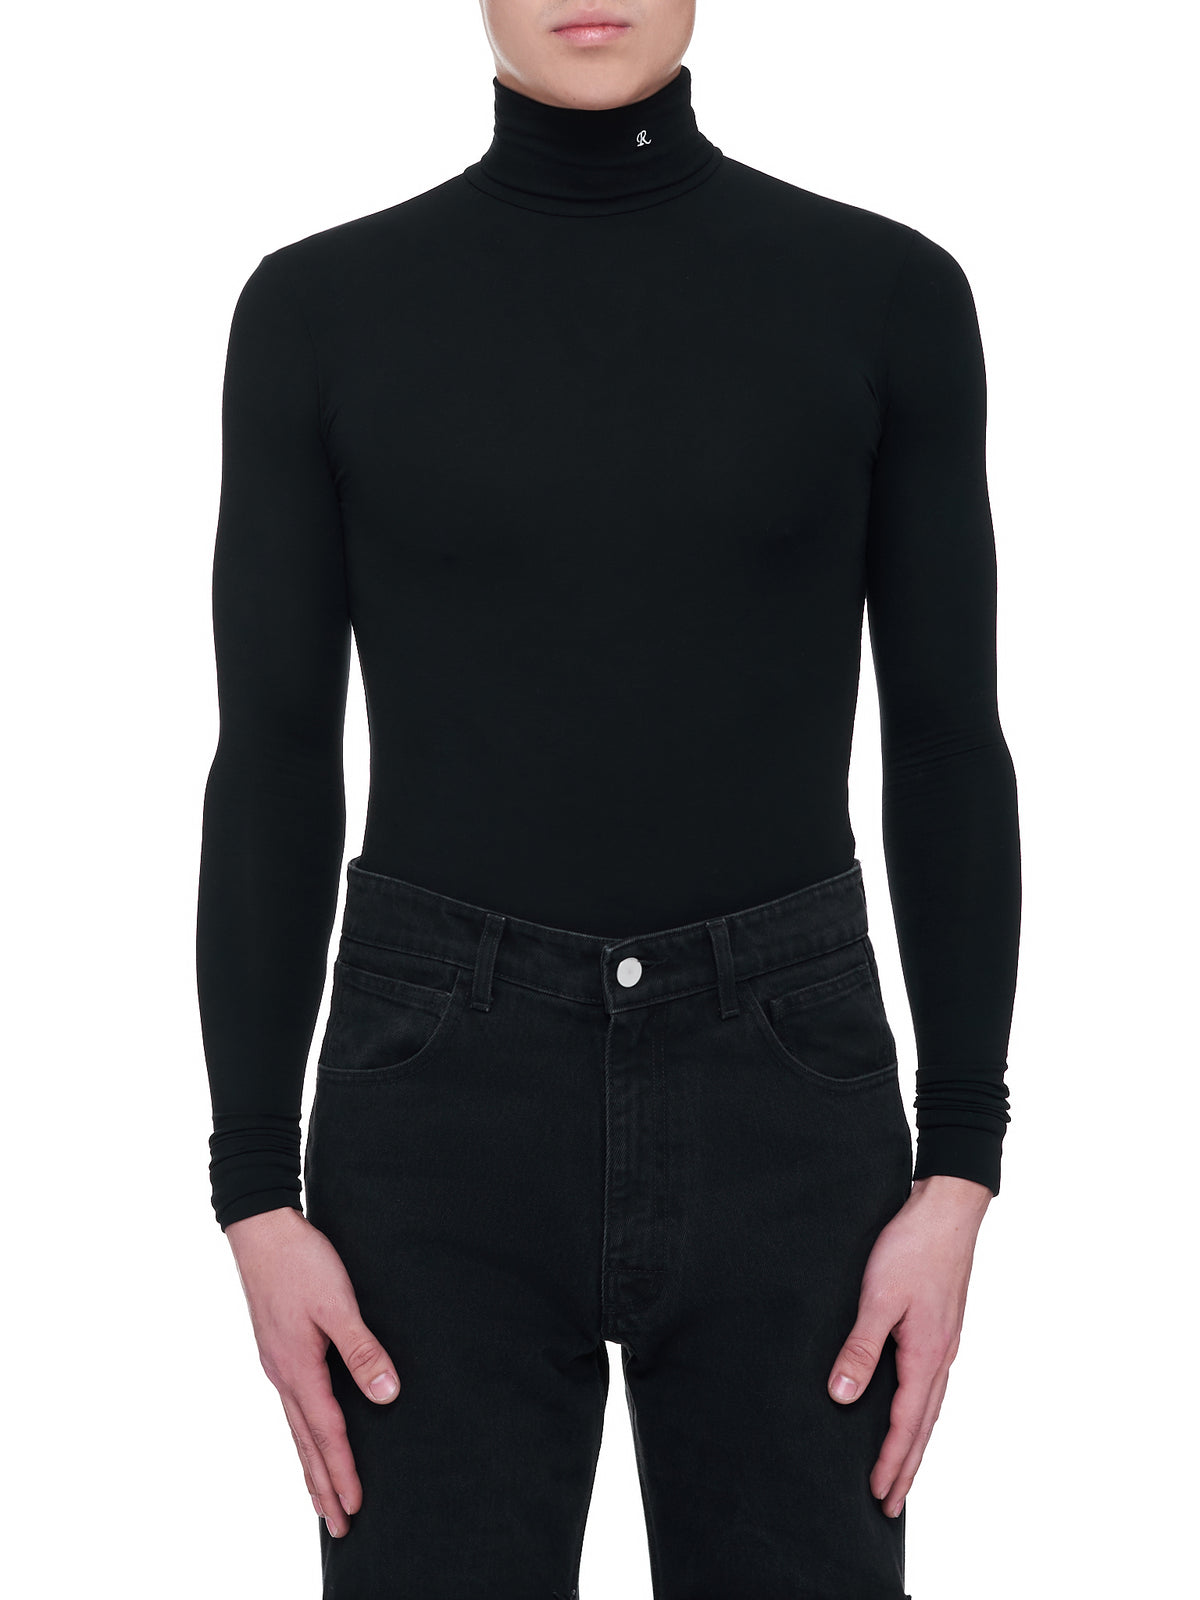 Long Sleeve Turtleneck Sweater (A01-118-19016-BLACK)